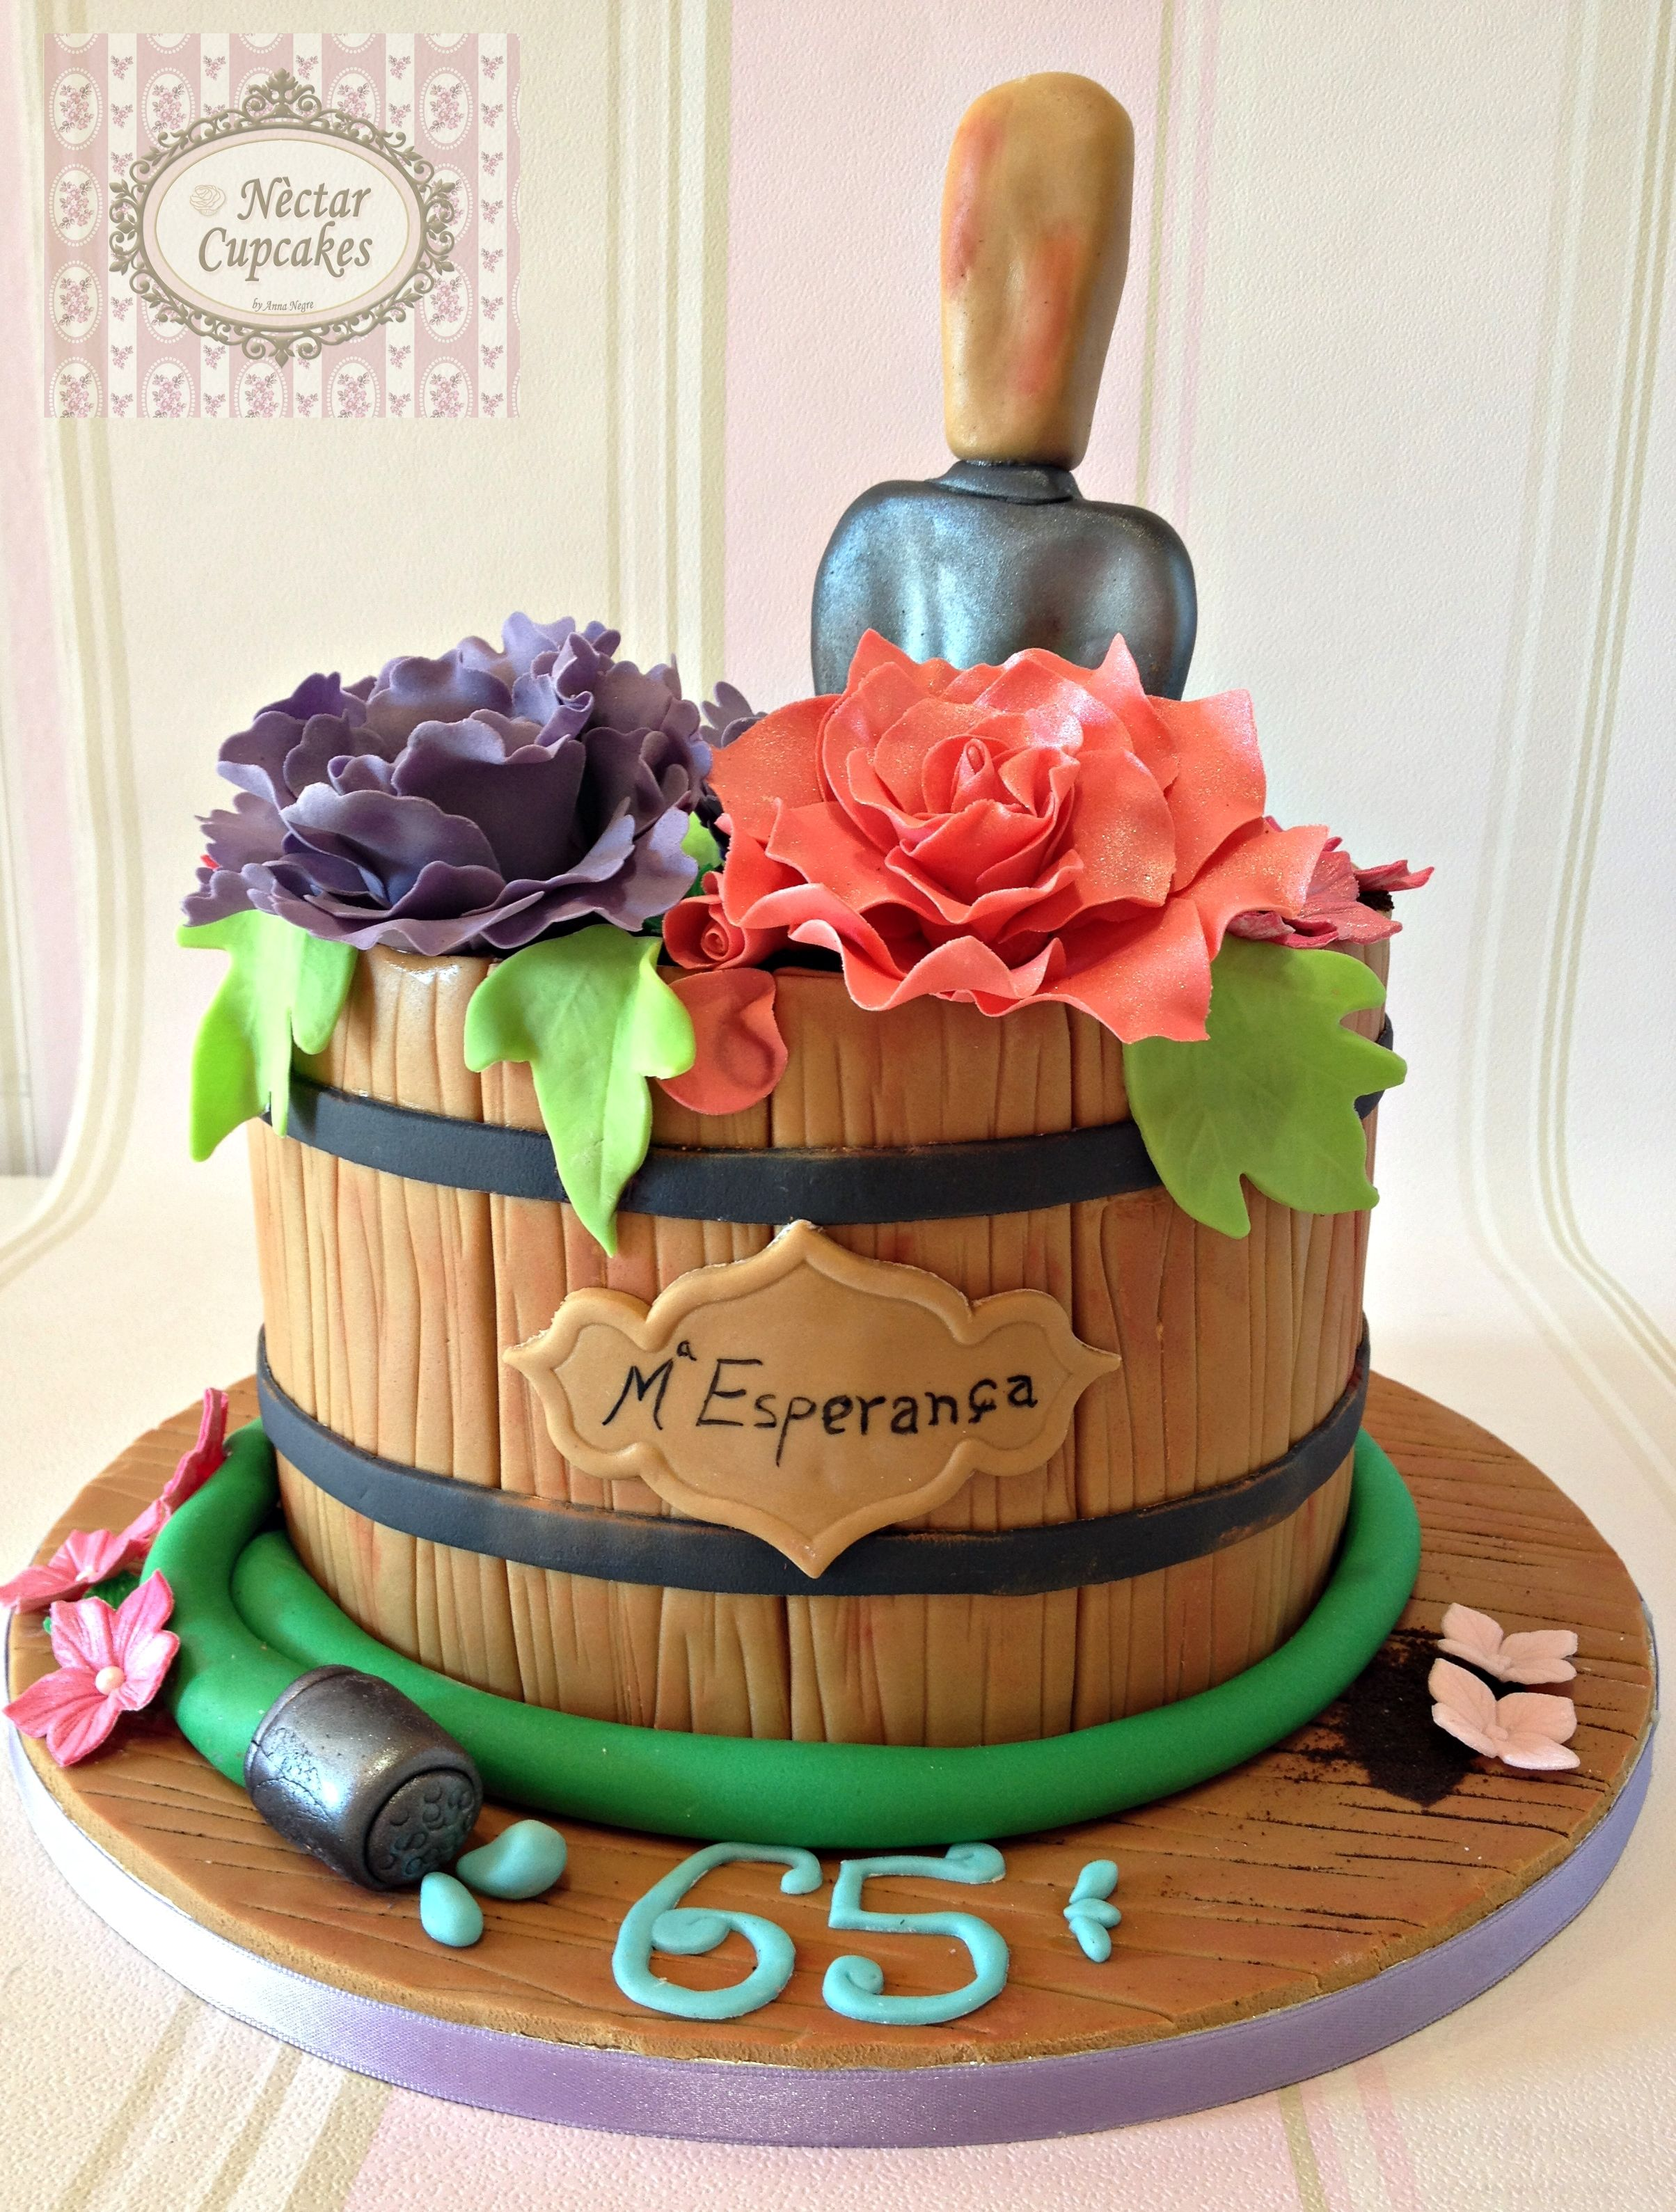 Flowerpot cake | Flower pot cake, Cake decorating, Pot cakes